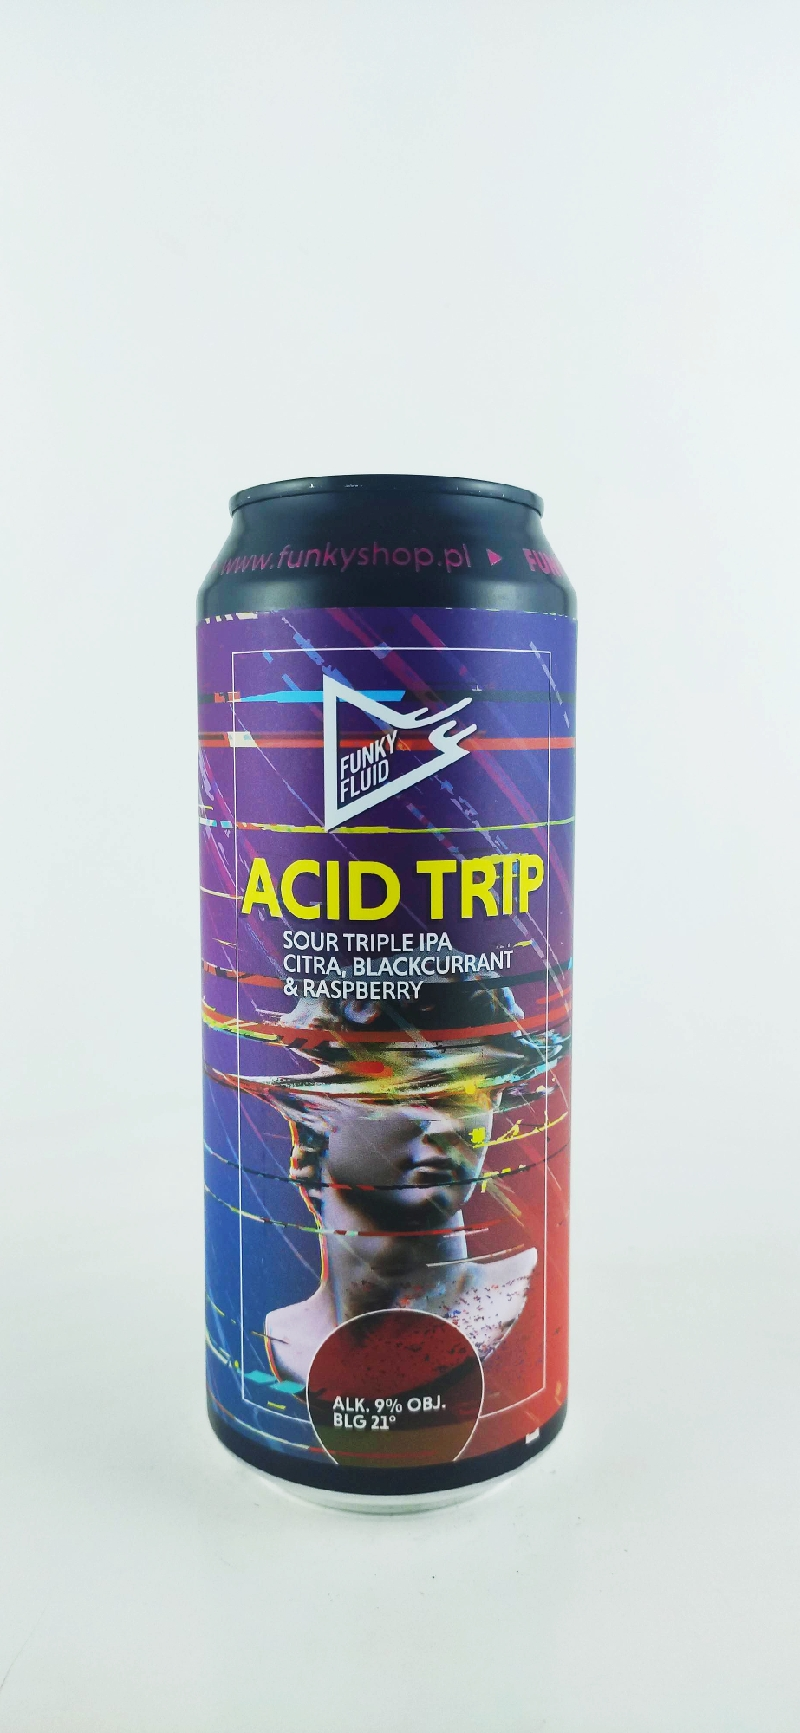 Funky Fluid Acid Trip: Citra black currant&raspbeerrry Sour